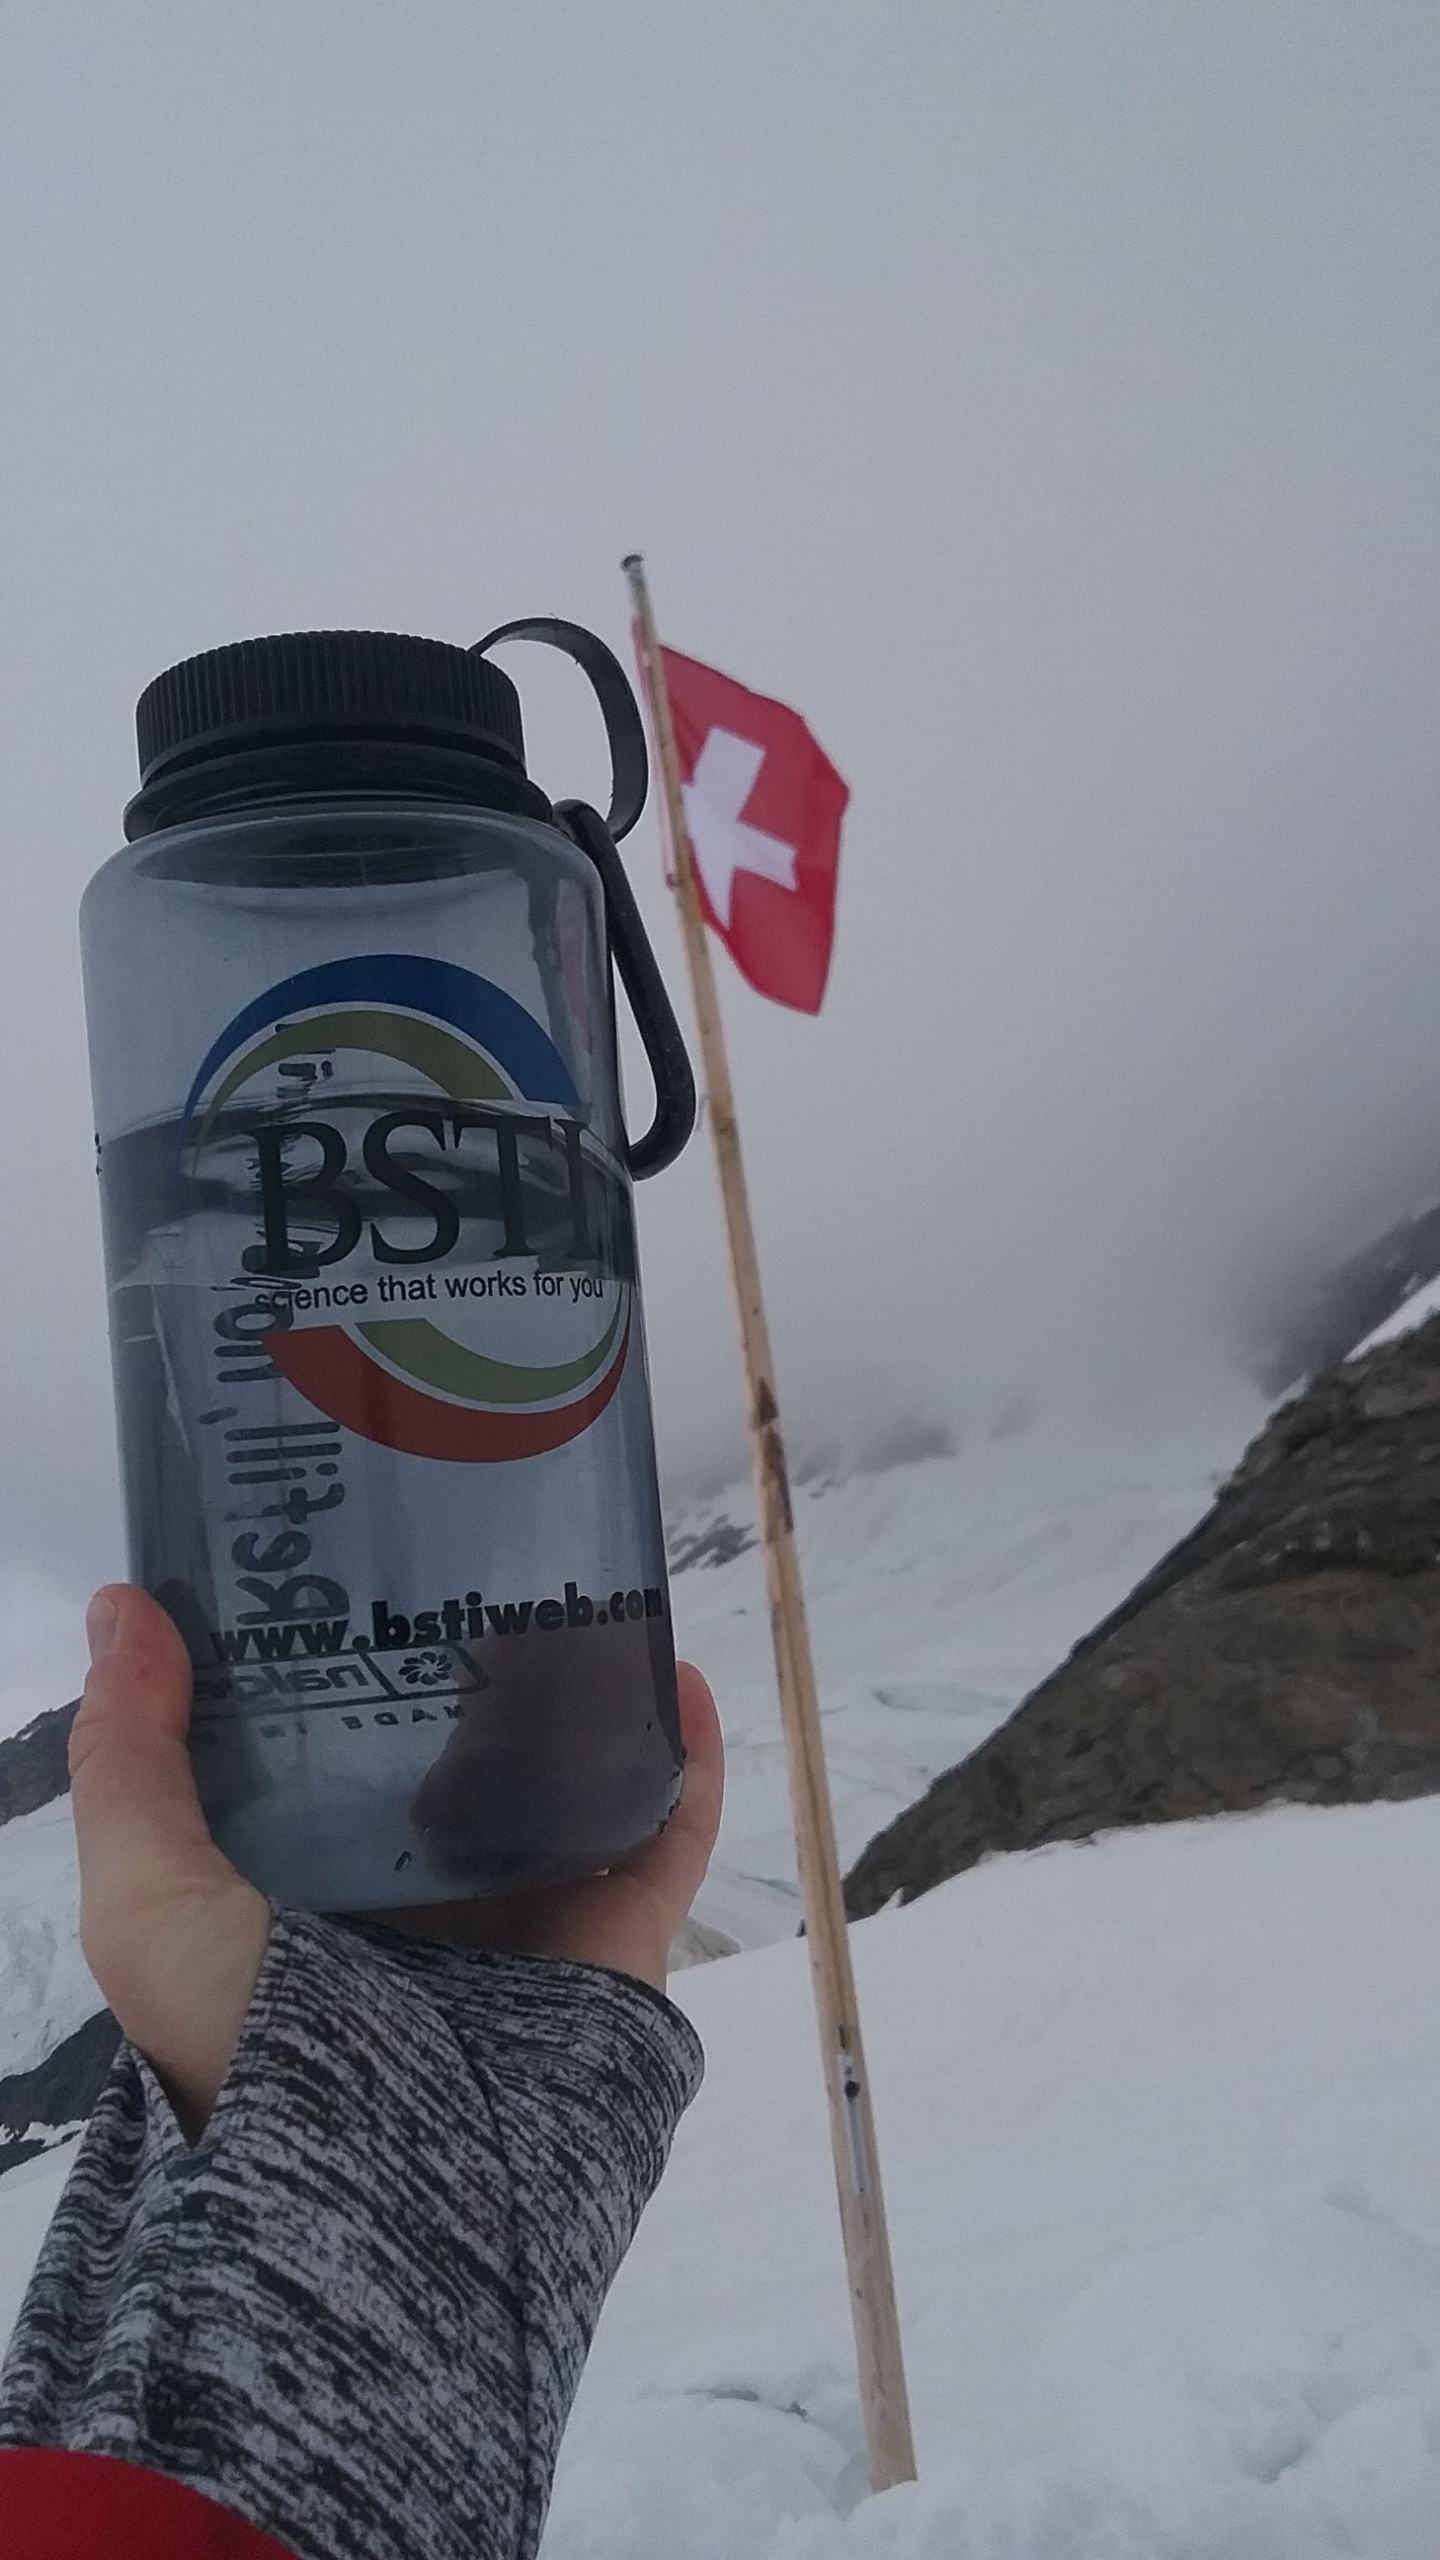 Reaching the Top of Europe in Switzerland